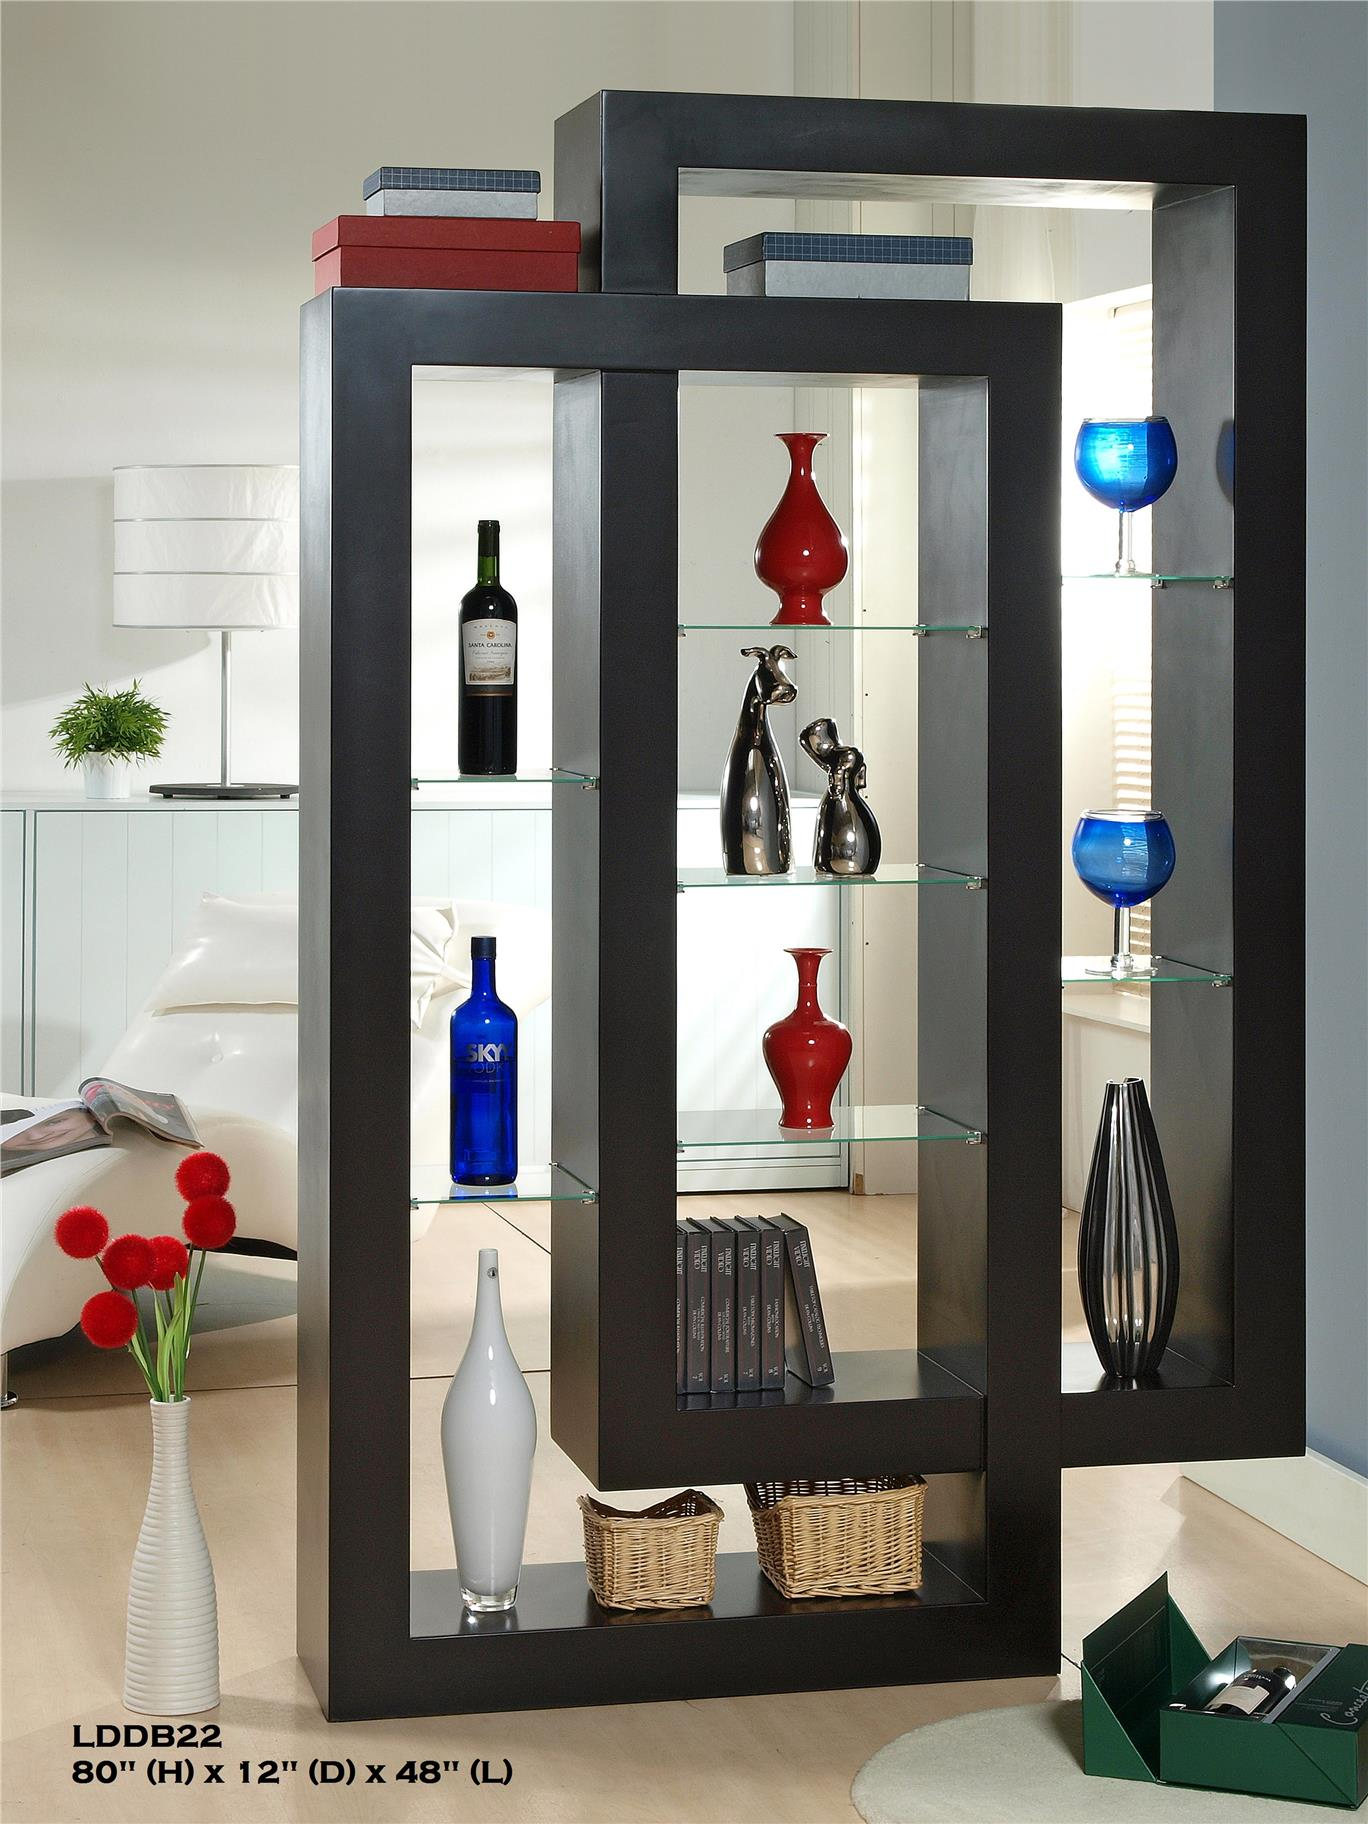 Nicehome LIMITED price hot item offer-offer!! DIVIDER CABINET-LDDB22